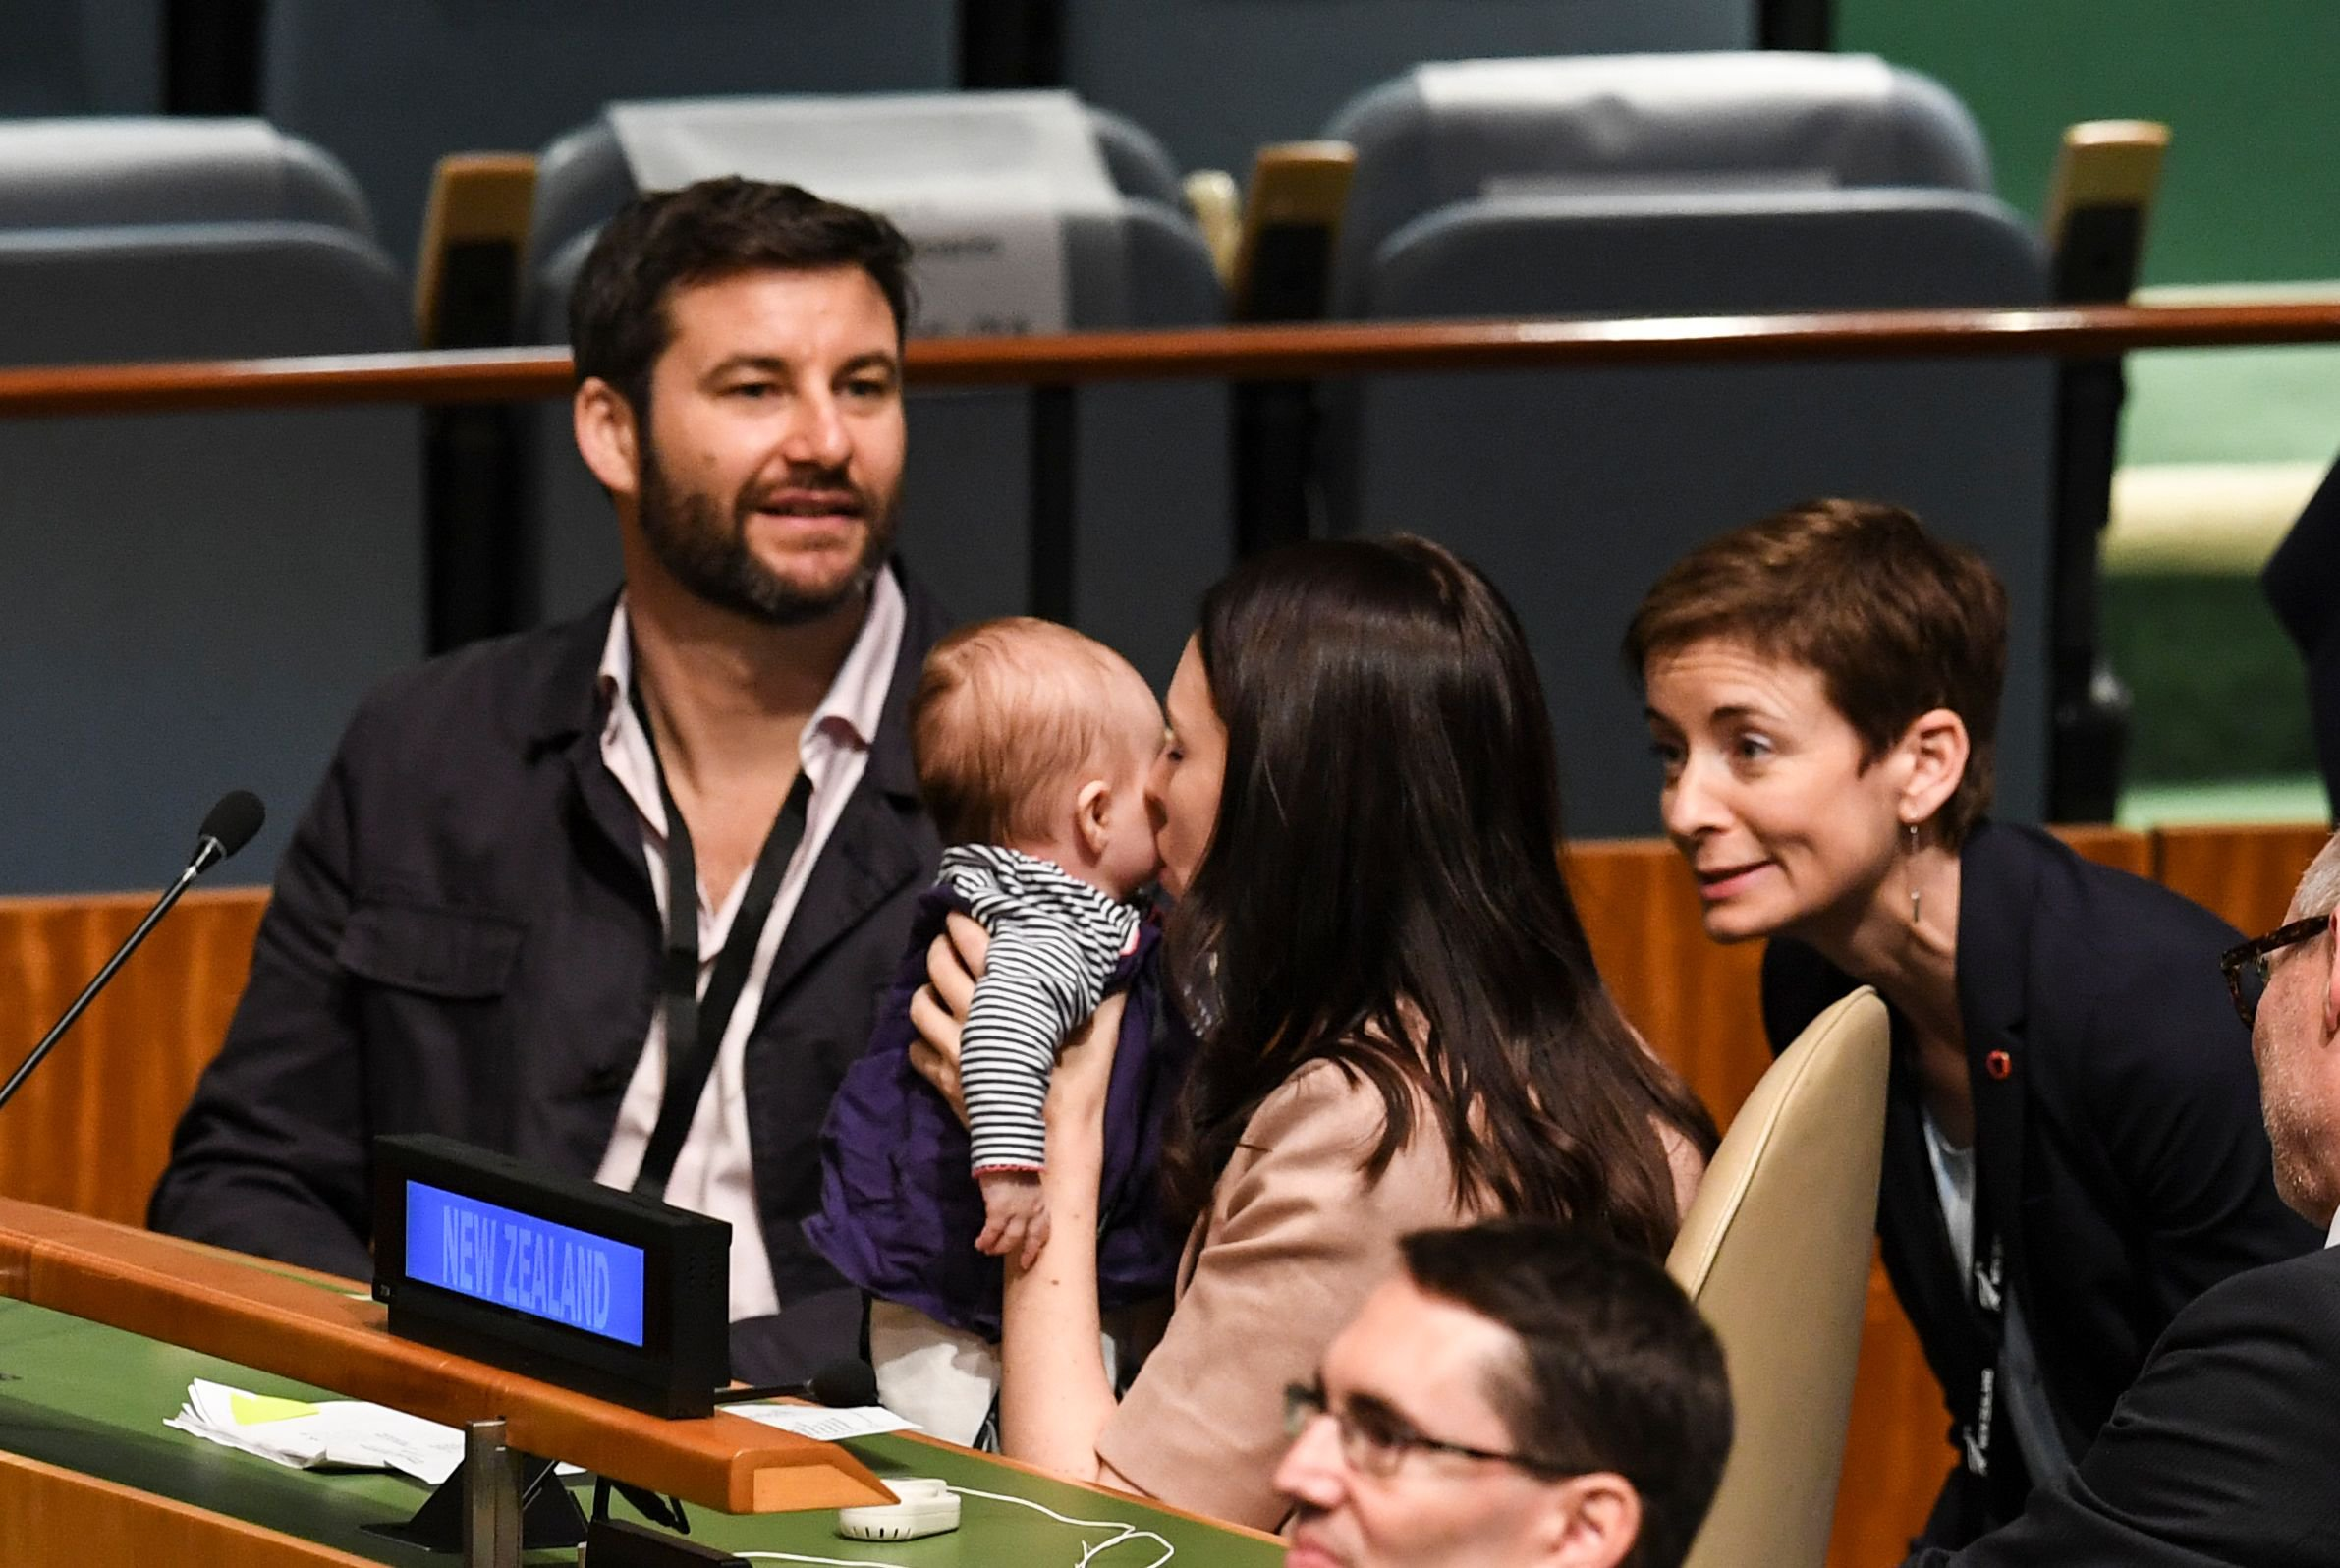 Jacinda Ardern, Prime Minister and Minister for Arts, Culture and Heritage, and National Security and Intelligence of New Zealand kisses her daughter Neve Te Aroha Ardern Gayford, as her husband Clarke Gayford (L) looks on during the Nelson Mandela Peace Summit September 24, 2018, one day before the start of the General Debate of the 73rd session of the General Assembly at the United Nations in New York. (Photo by Don EMMERT / AFP)DON EMMERT/AFP/Getty Images